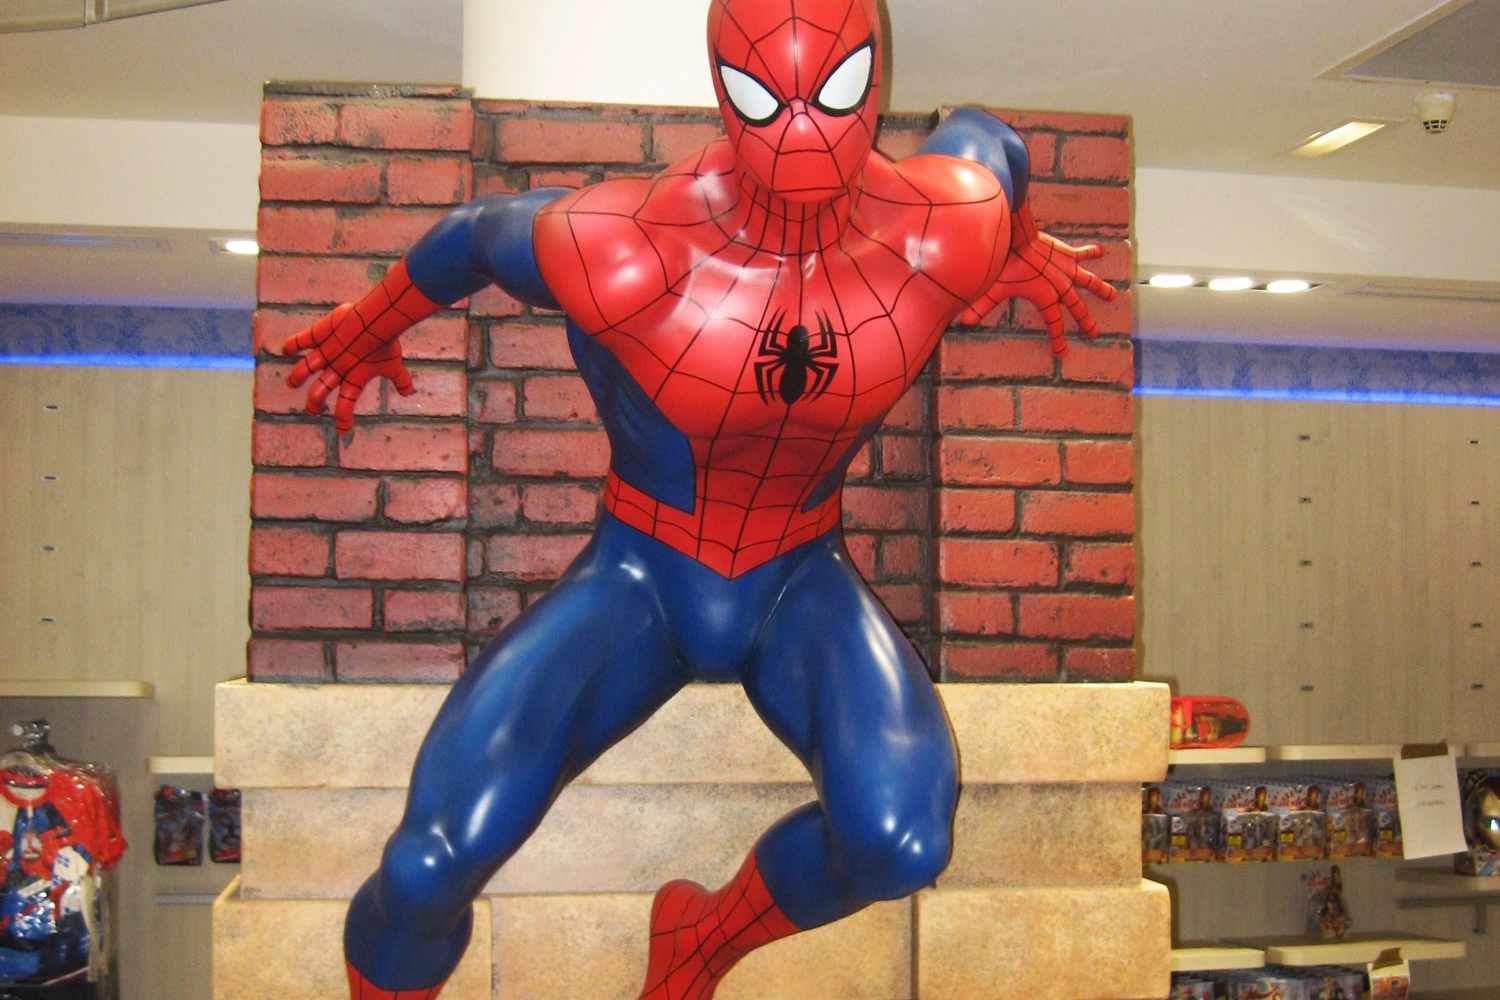 Propability-_Store-Development_Shop-fixtures-and-fittings_Visual-Merchandise-and-Display-Solutions-_-Creative-Design-_-Installation-_-Disney-Store-Paris-_-Spiderman-instiliation.jpg